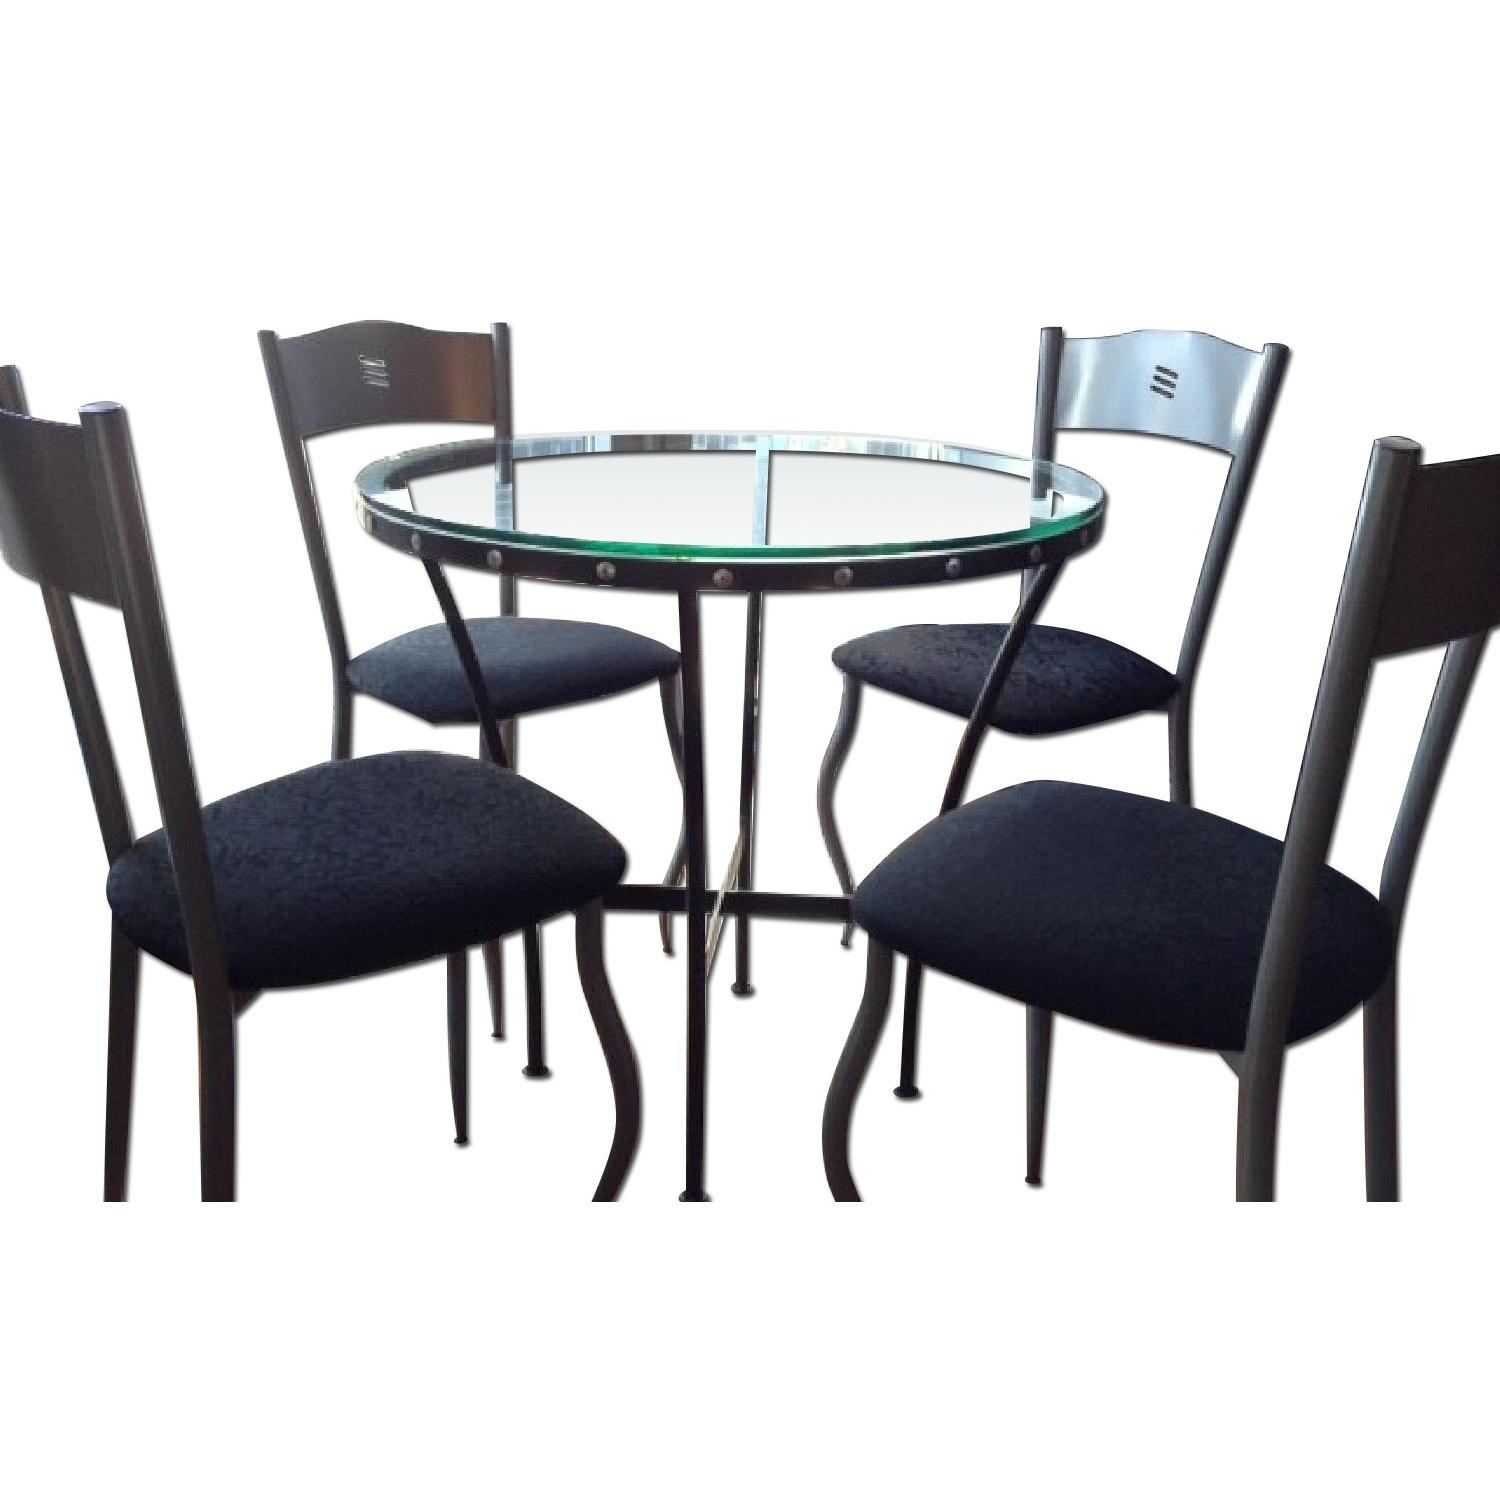 Glass Table w/ 4 Chairs - image-0